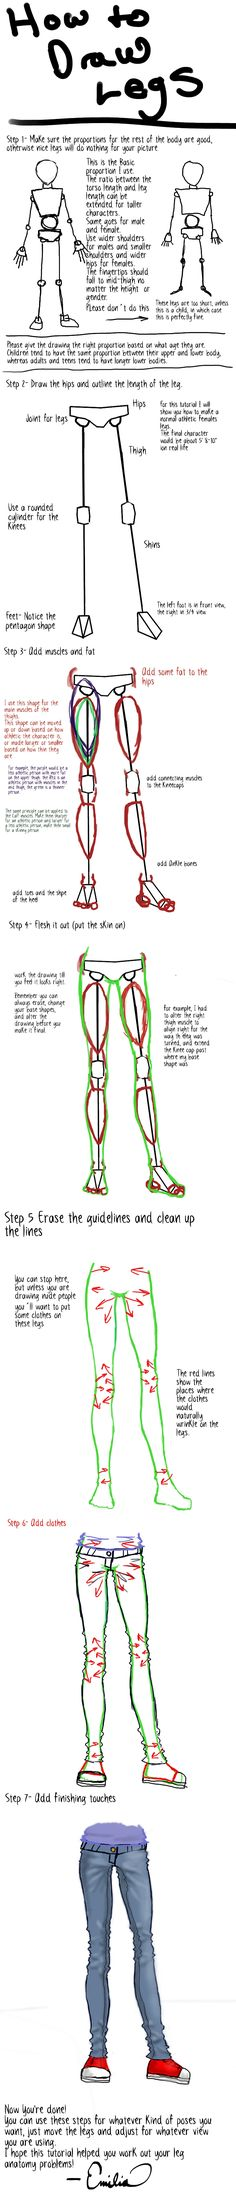 How to Draw Legs Tutorial by EmiliaArgon.deviantart.com on @deviantART